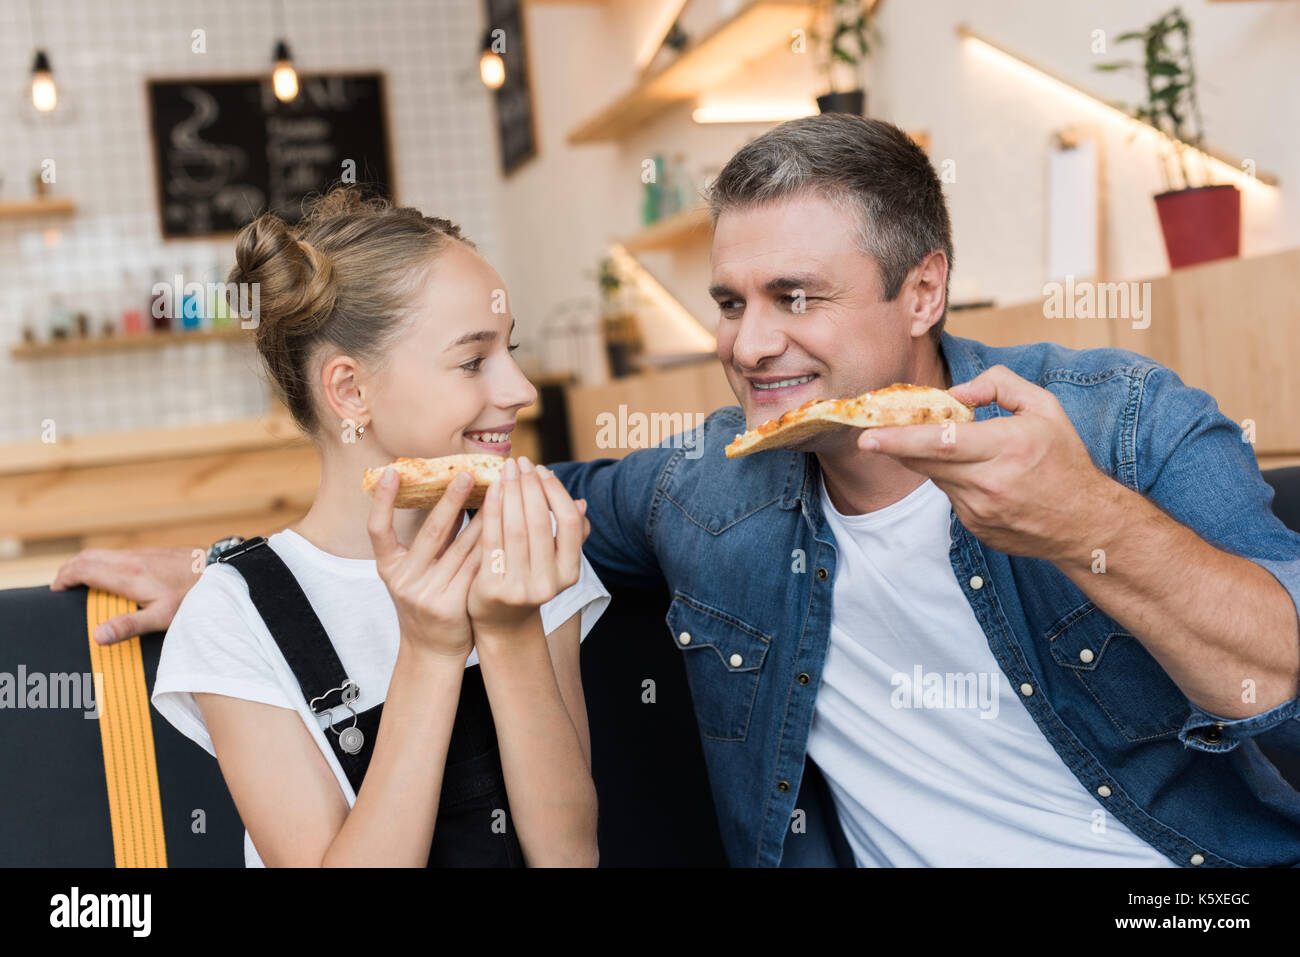 father and daughter eating pizza - Stock Image